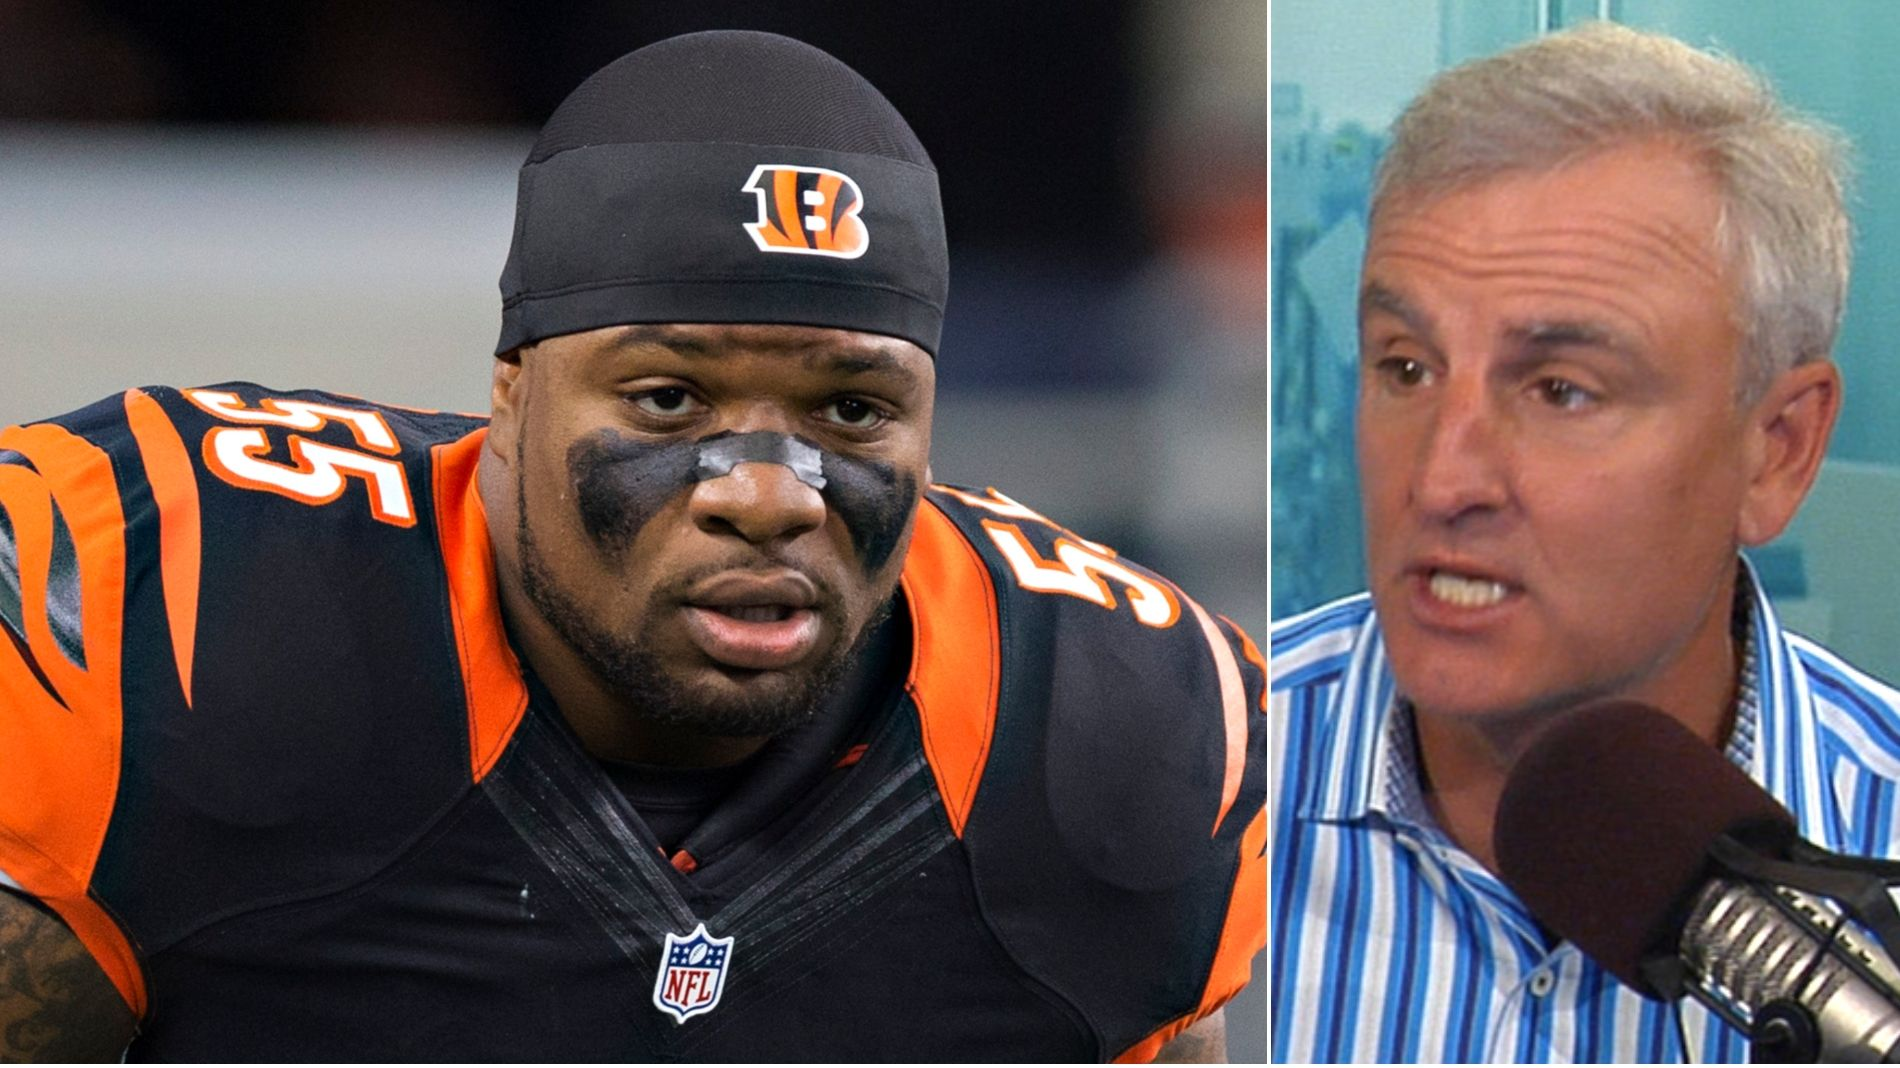 Wingo: Burfict is the least reliable player in the NFL